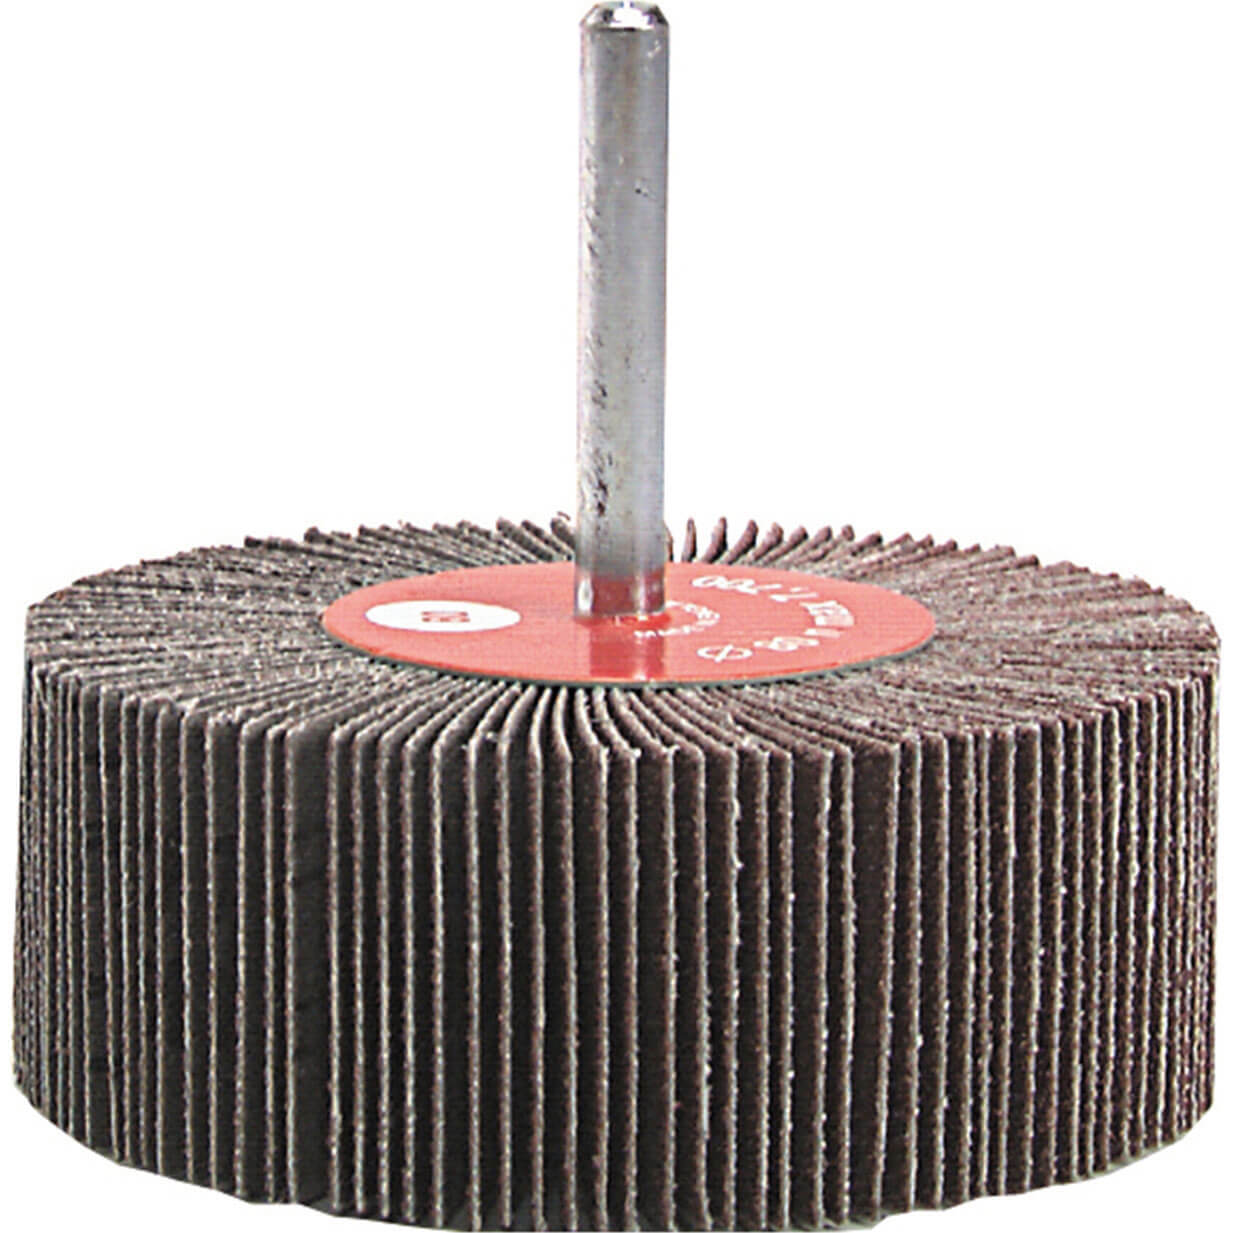 Image of Black & Decker Piranha Abrasive Flap Wheel 20mm 20mm 80g